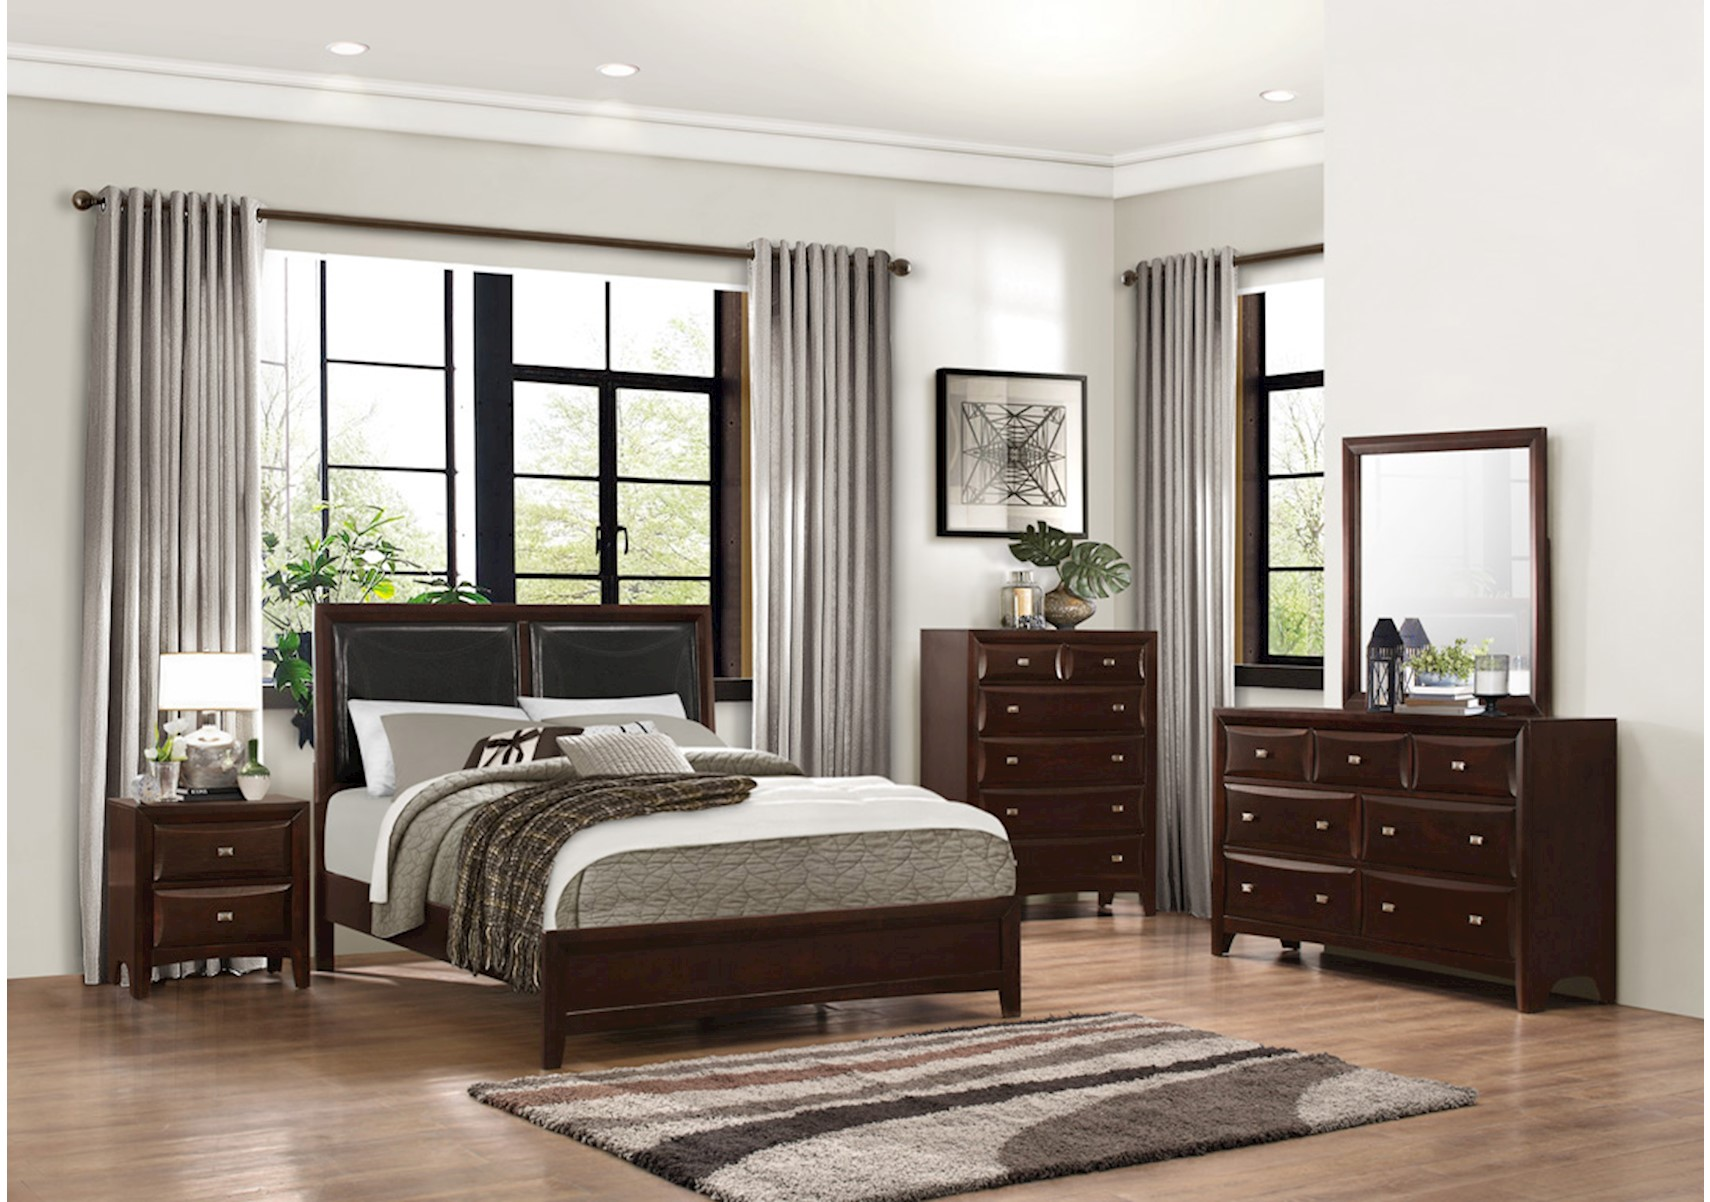 Avalon 4 Pc Queen Bedroom Set